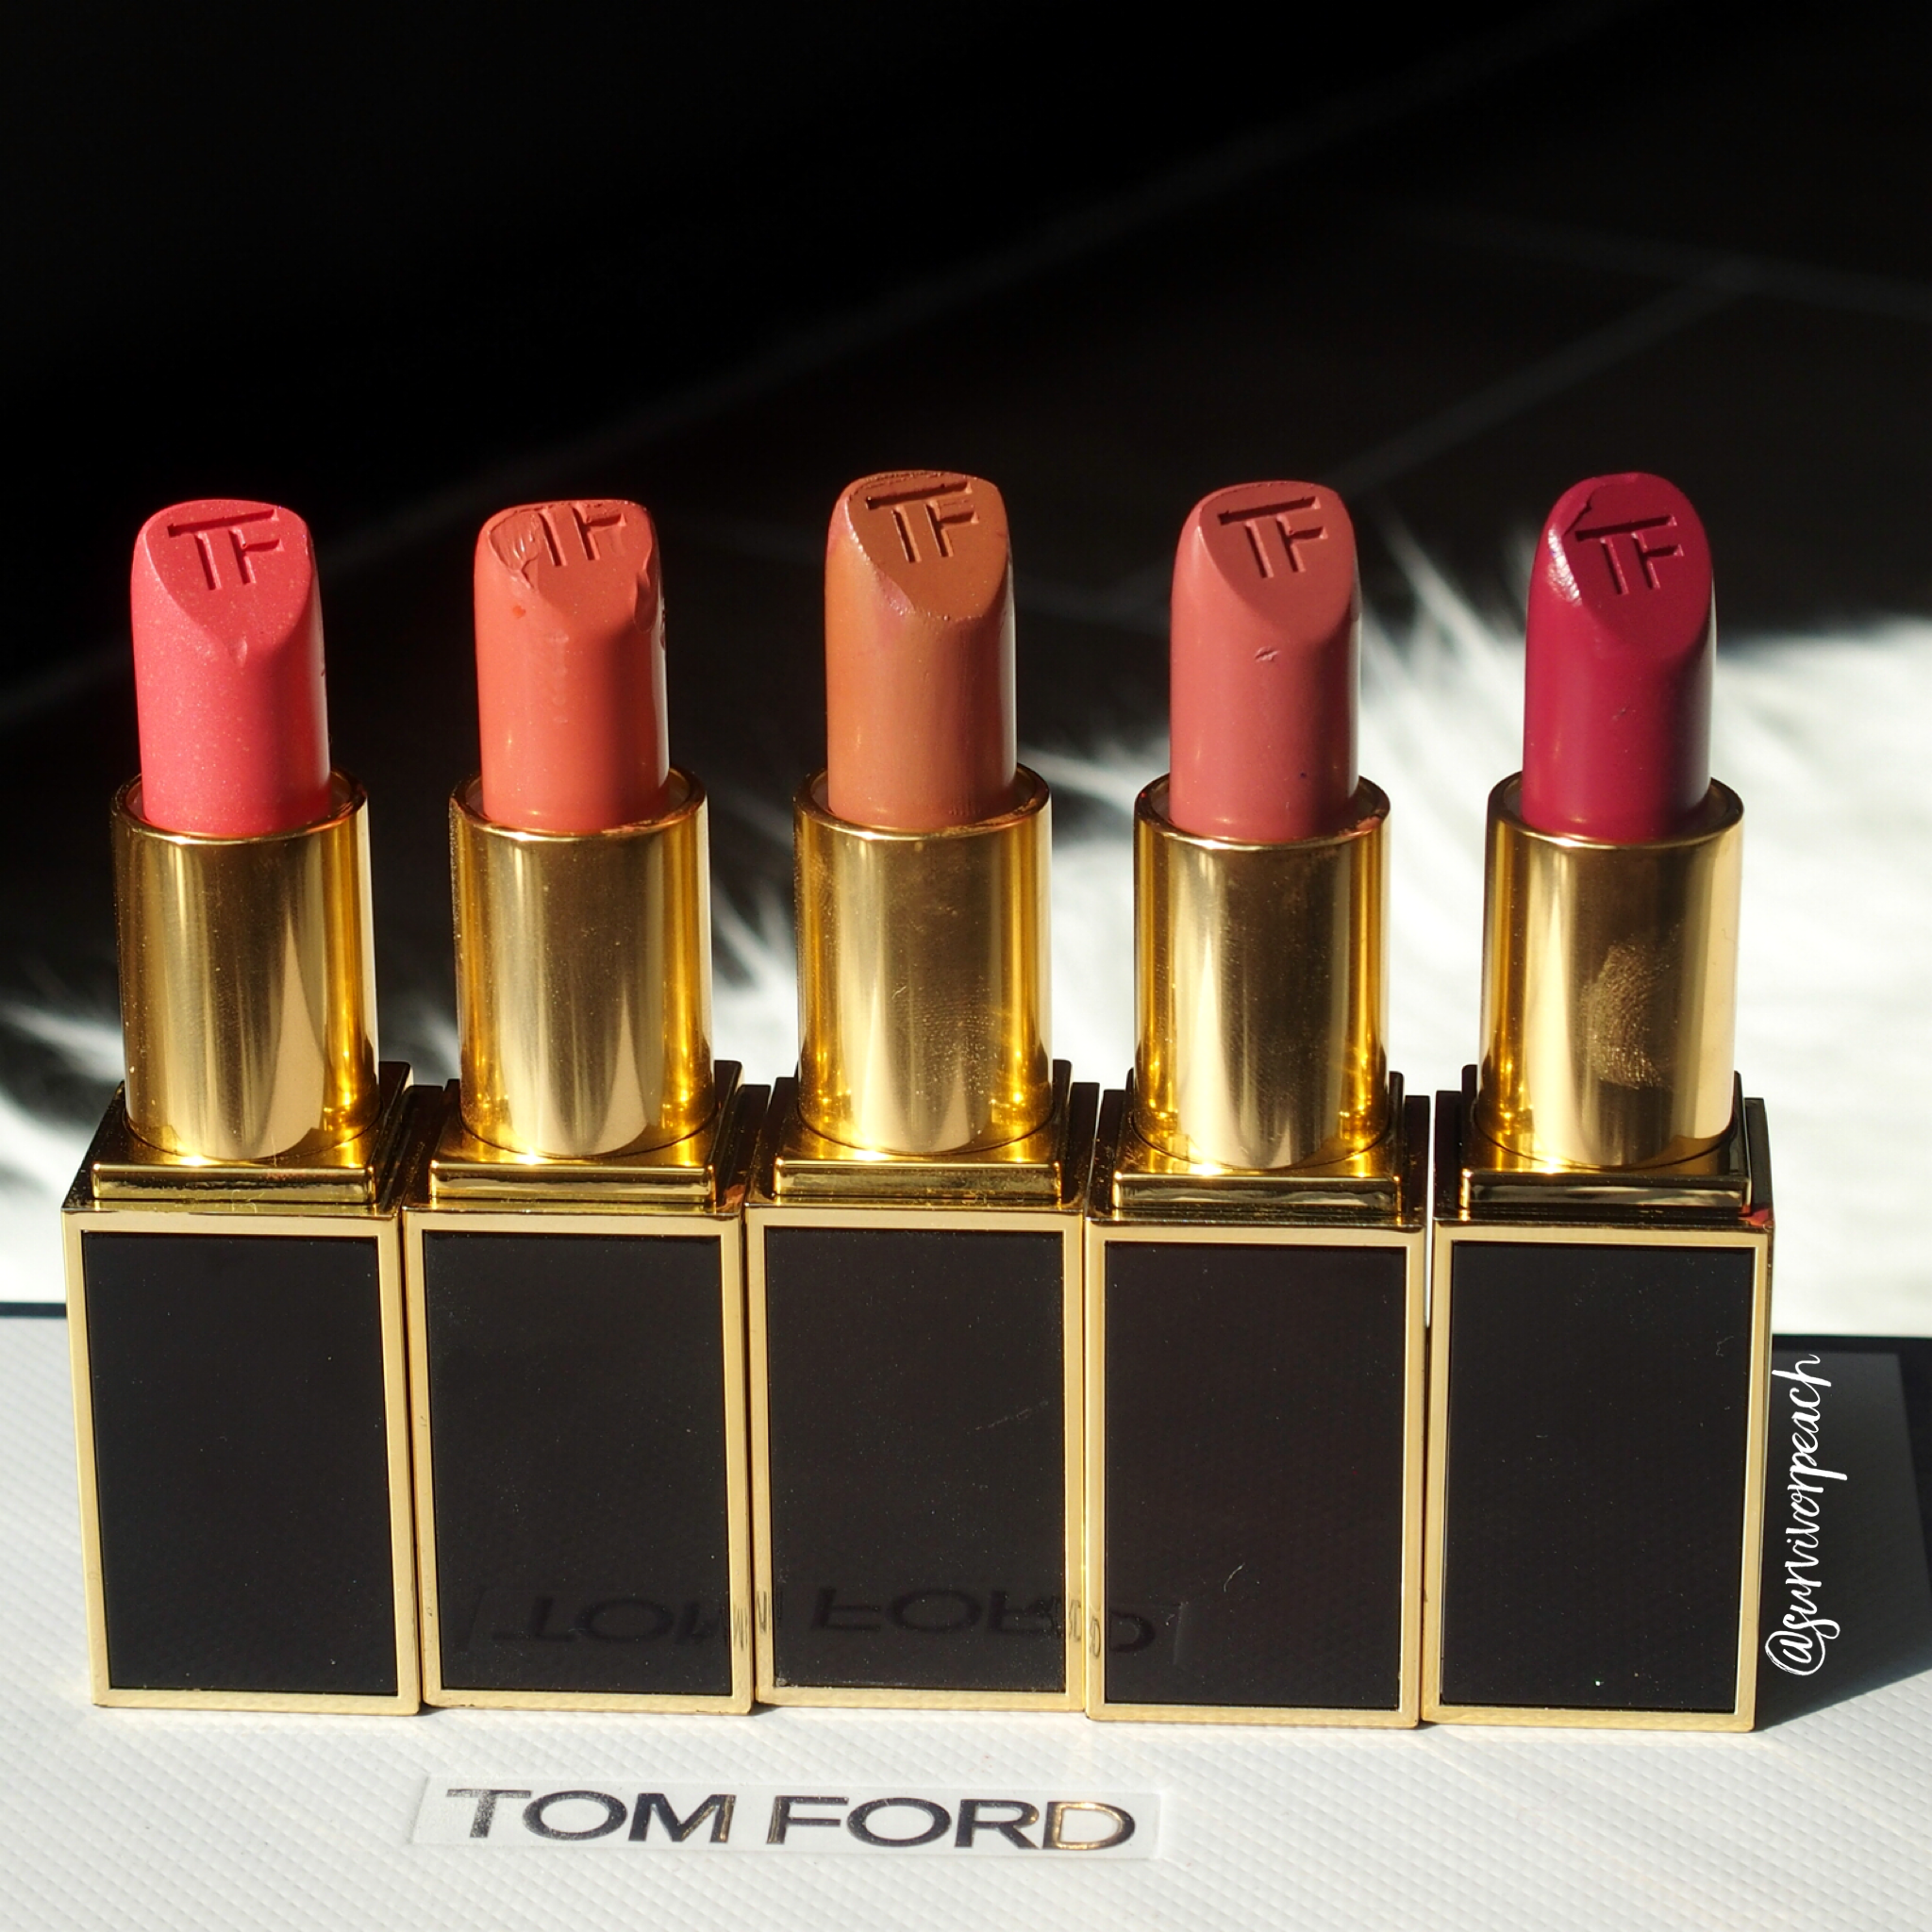 Tom Ford Lipsticks in Naked Coral, Twist of Fate, Negligee, Casablanca,Adora